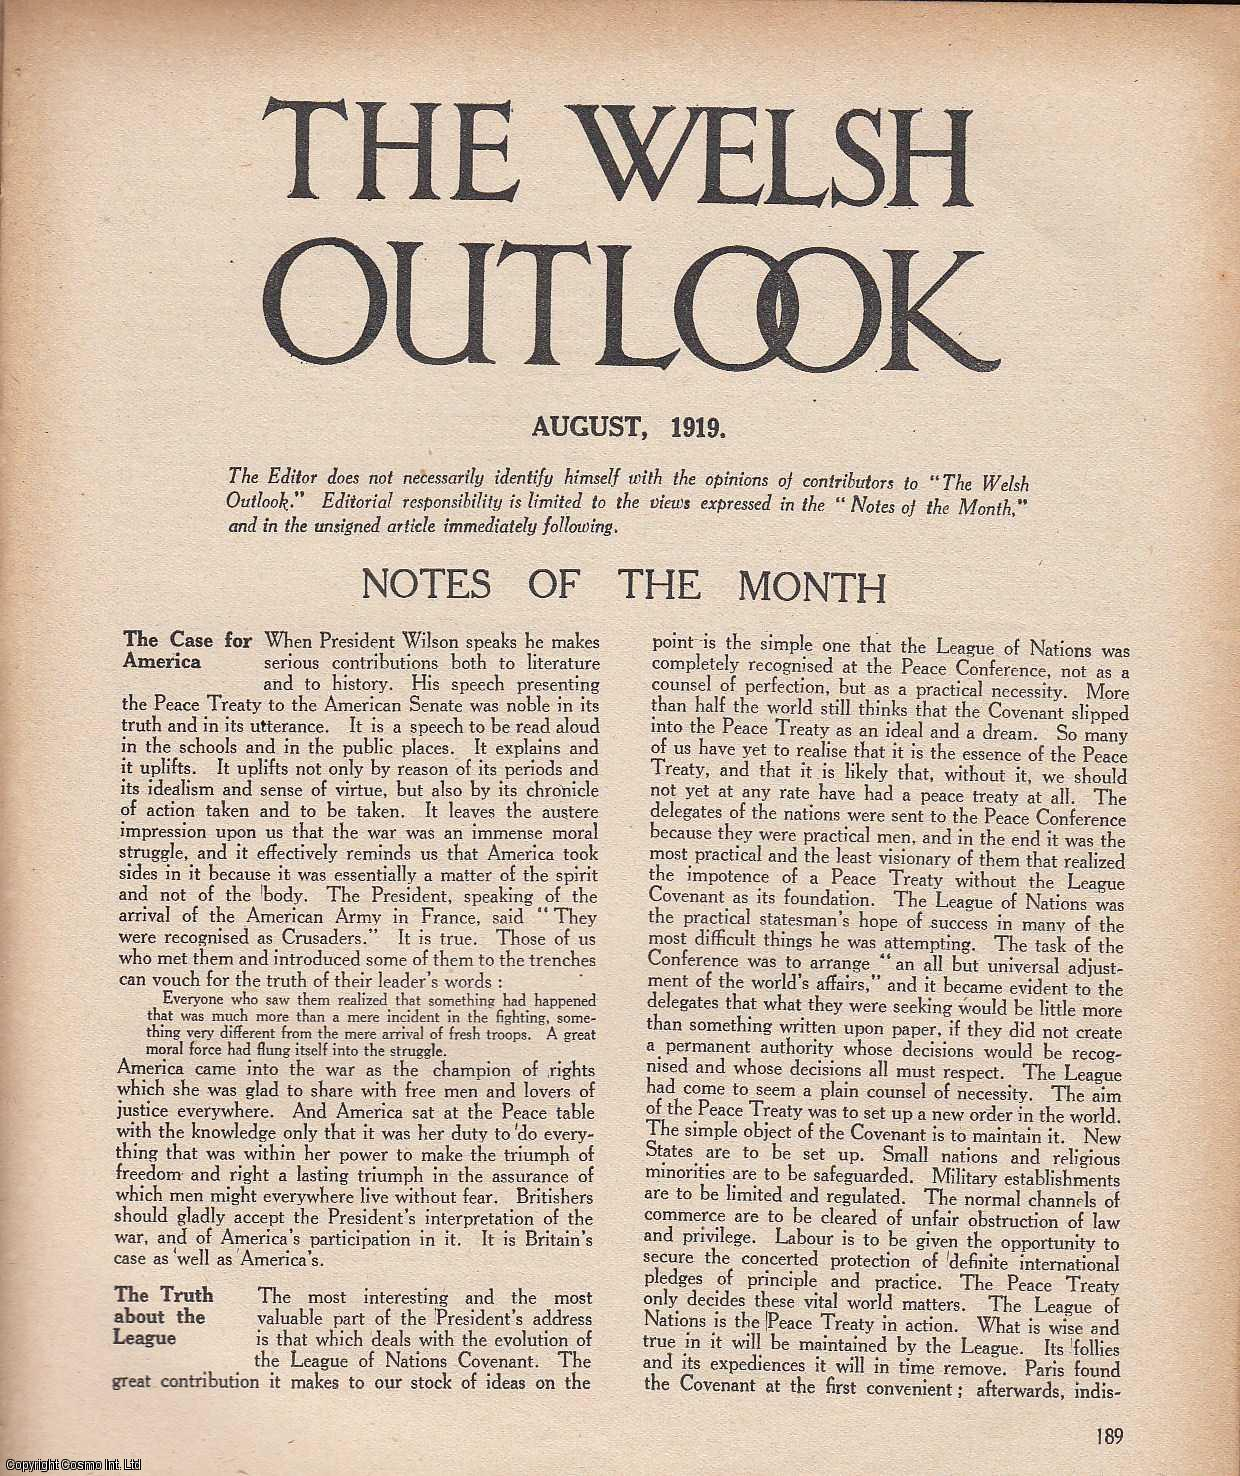 The Welsh Outlook. A Monthly Journal of National Social Progress. August, 1919. Contains; An Irish View of Welsh Nationalism by Stephen Gwynn; Local Government Areas: The Need of Reform by Mr. W. Harris; Eisteddfod Symposium: The Need of Reform by Beriah Gwynfe Evans; The Cymanfa Ganu Programme by L. J. Roberts; Daniel Owen by Rev. Llew. G. Williams; Life and Letters: A Modern Prophet bt T. Durston; A Son of Wales by M. Wateyn Williams., Thomas Jones (Editor)